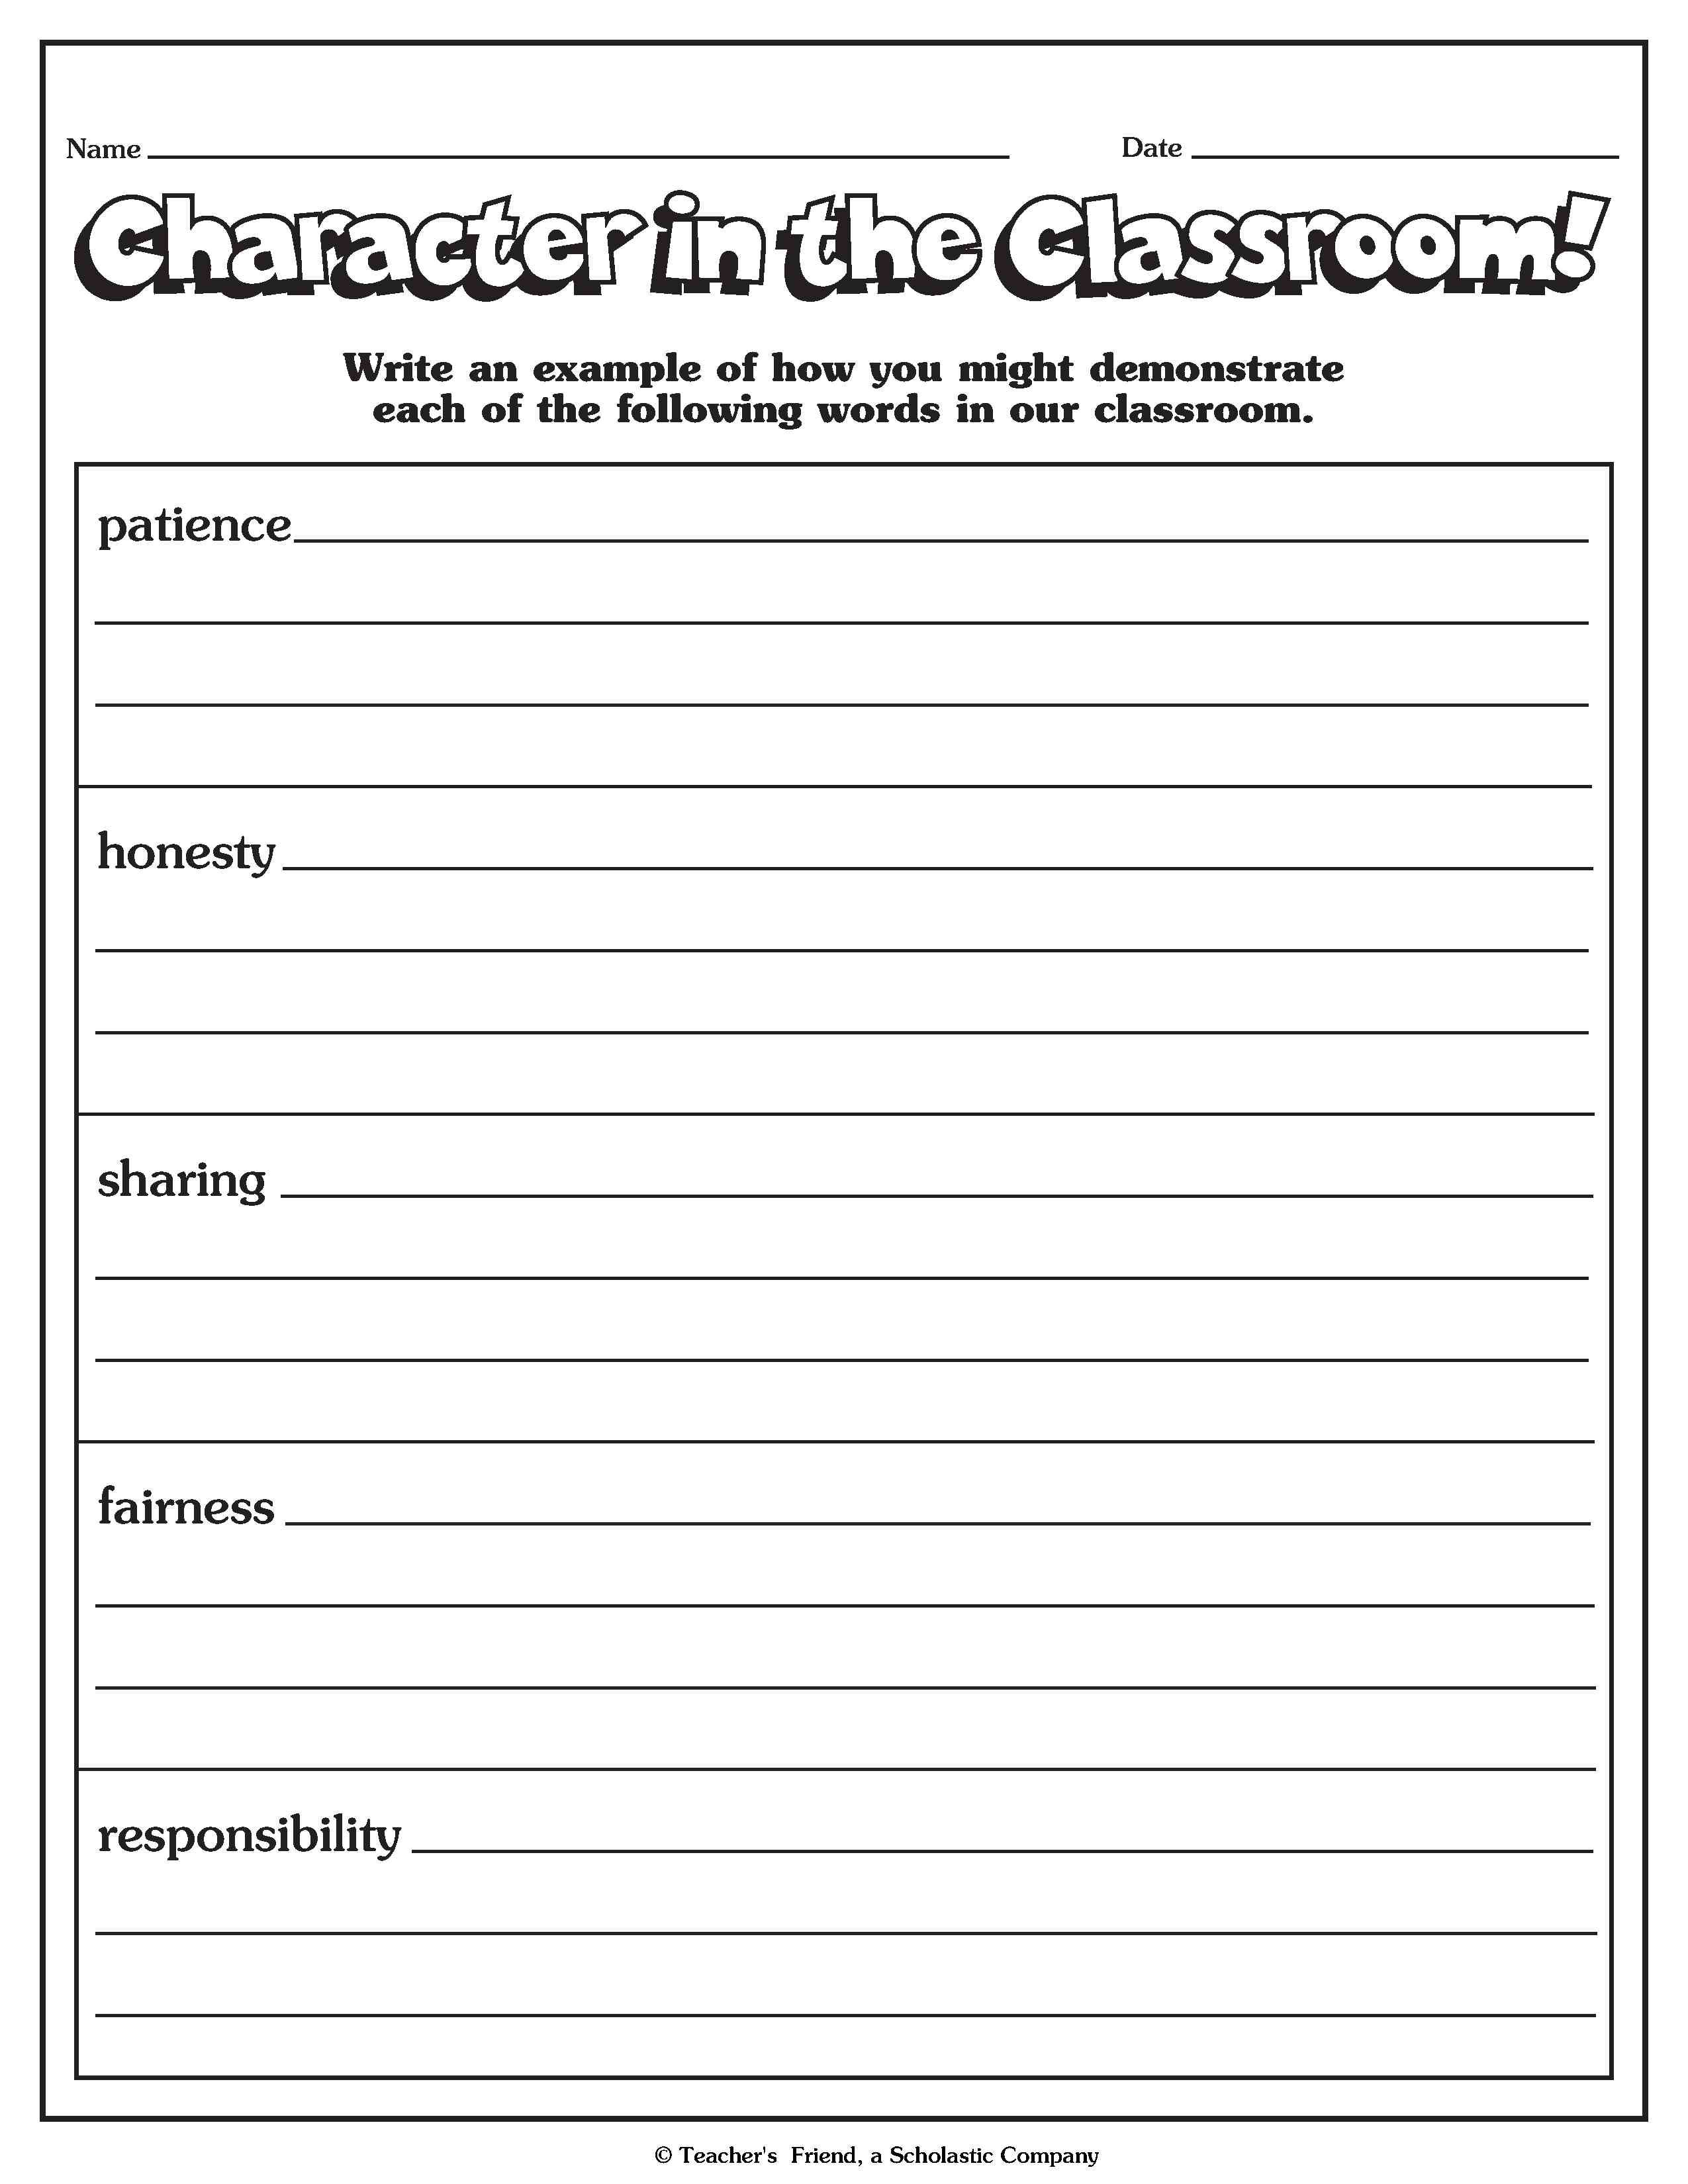 Character Traits Worksheets Pdf   Printable Worksheets and Activities for  Teachers [ 3300 x 2550 Pixel ]